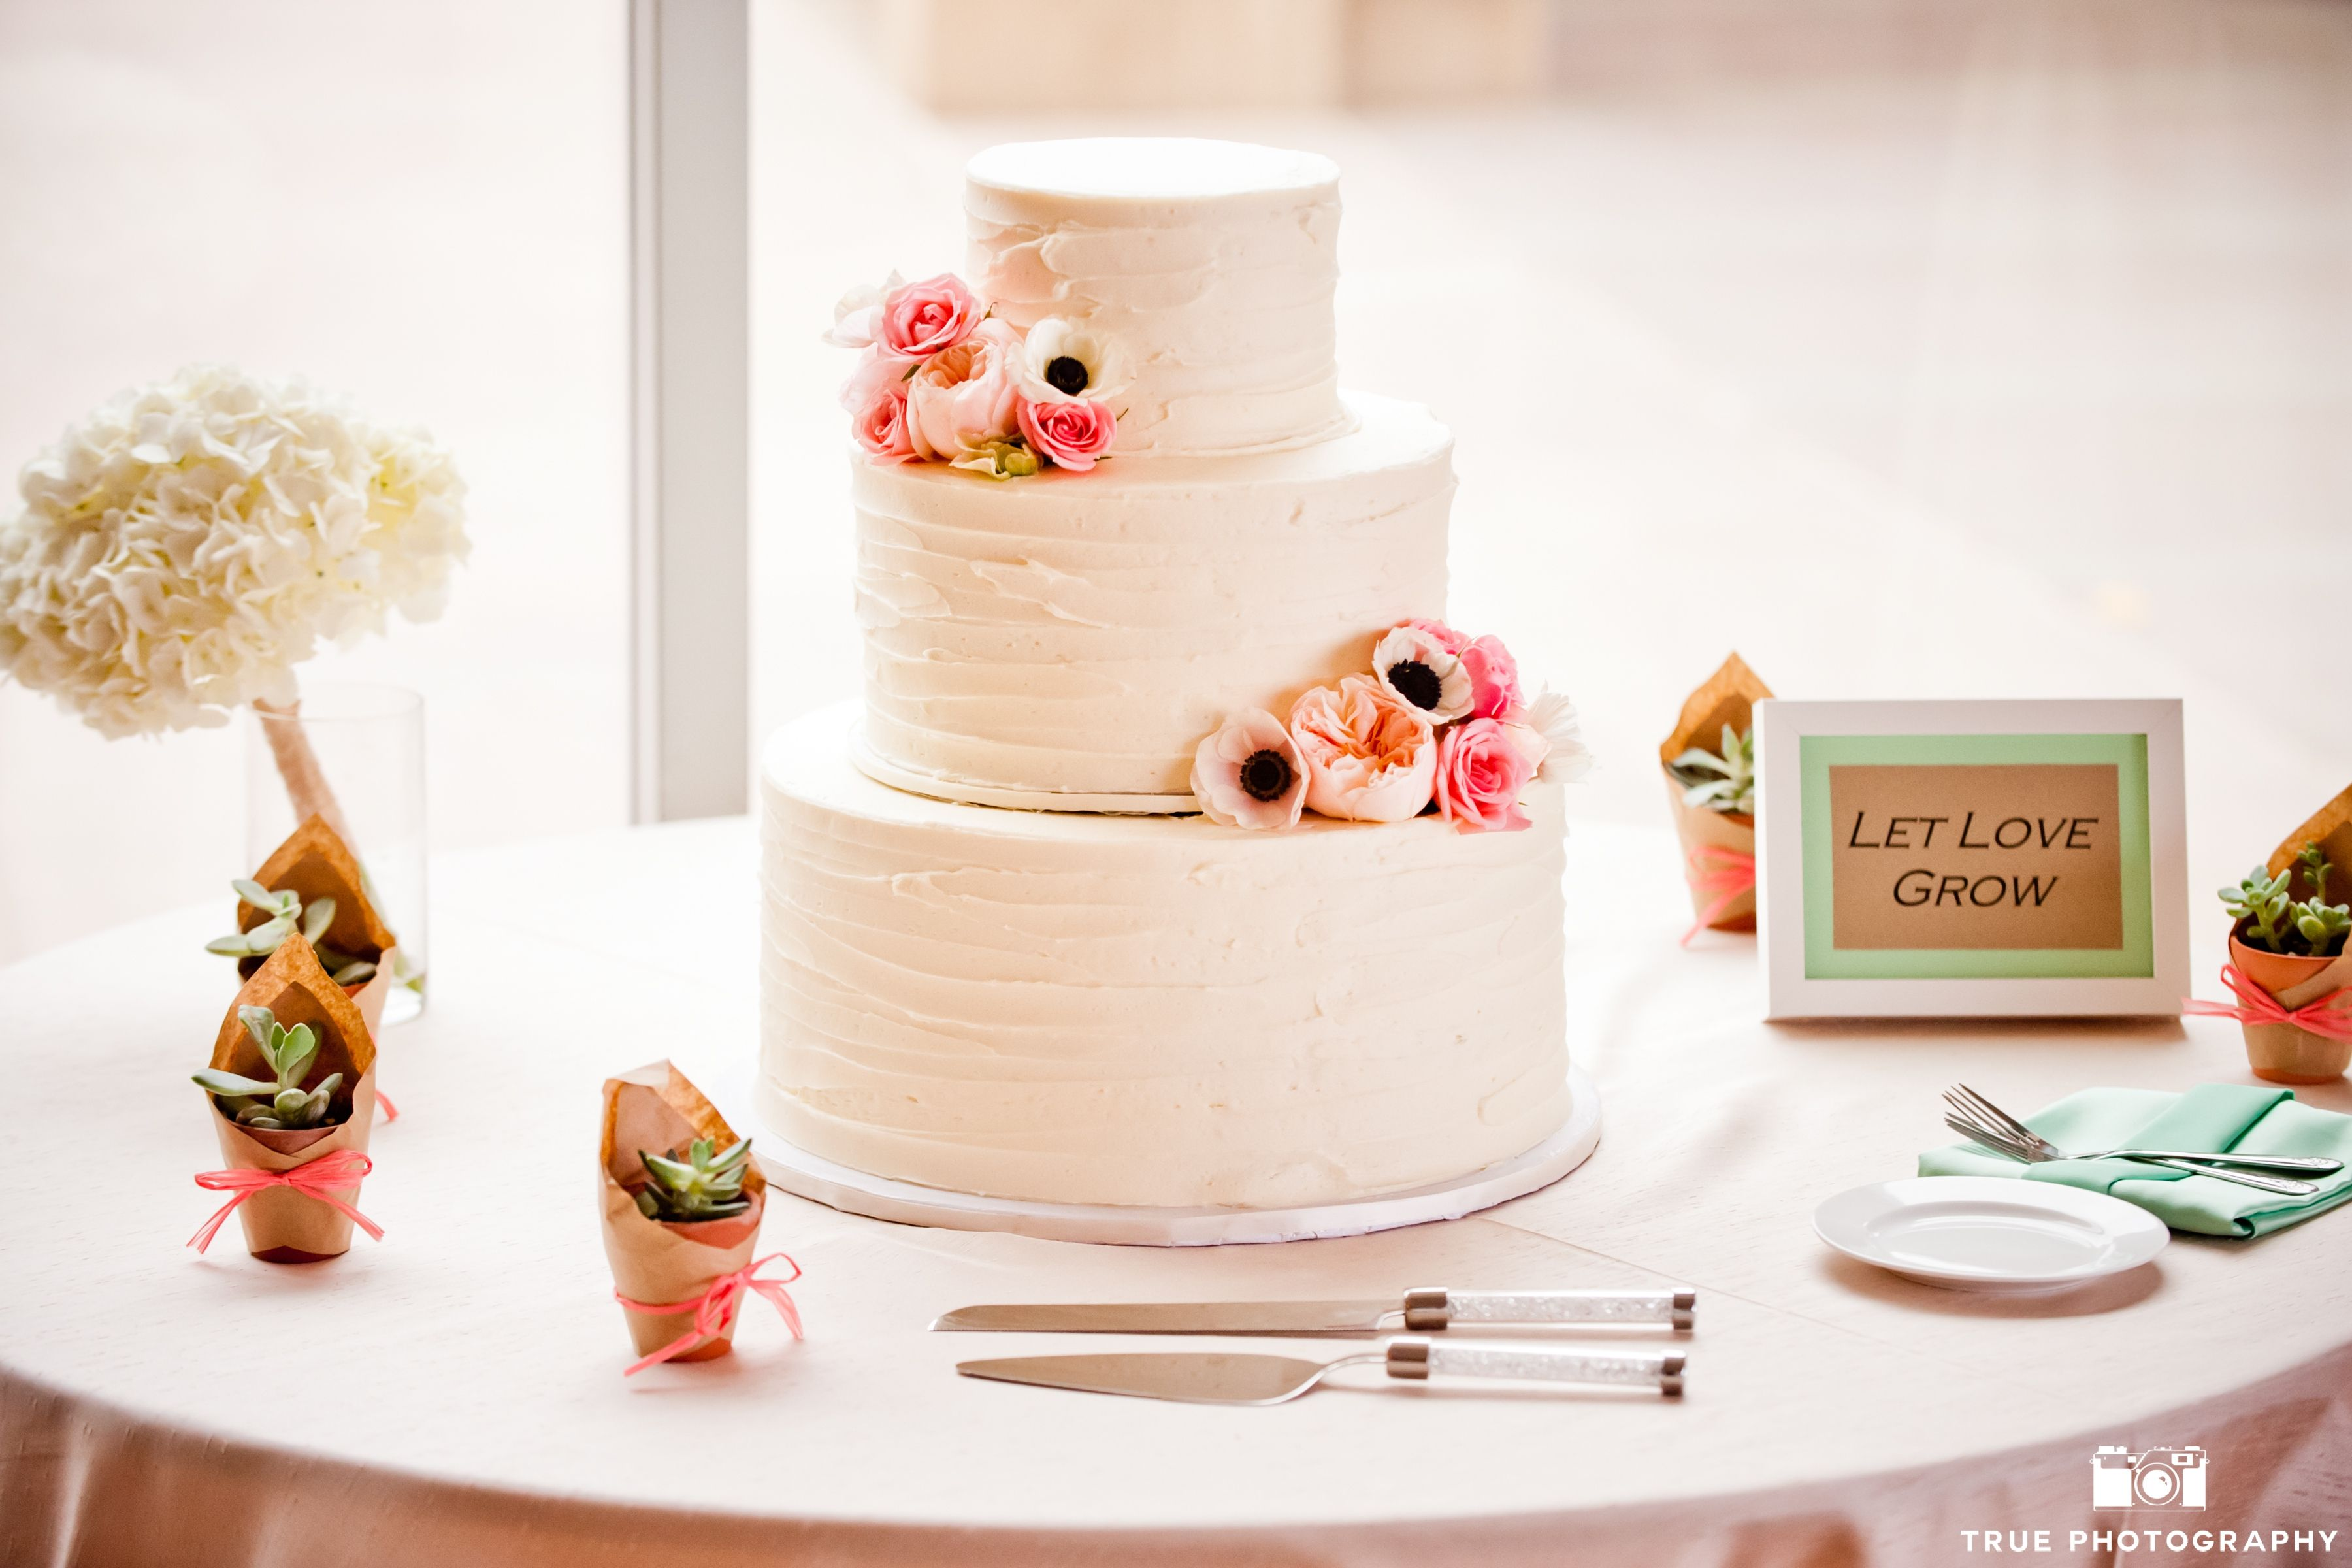 Perfect pink and white wedding cake with added peonies and